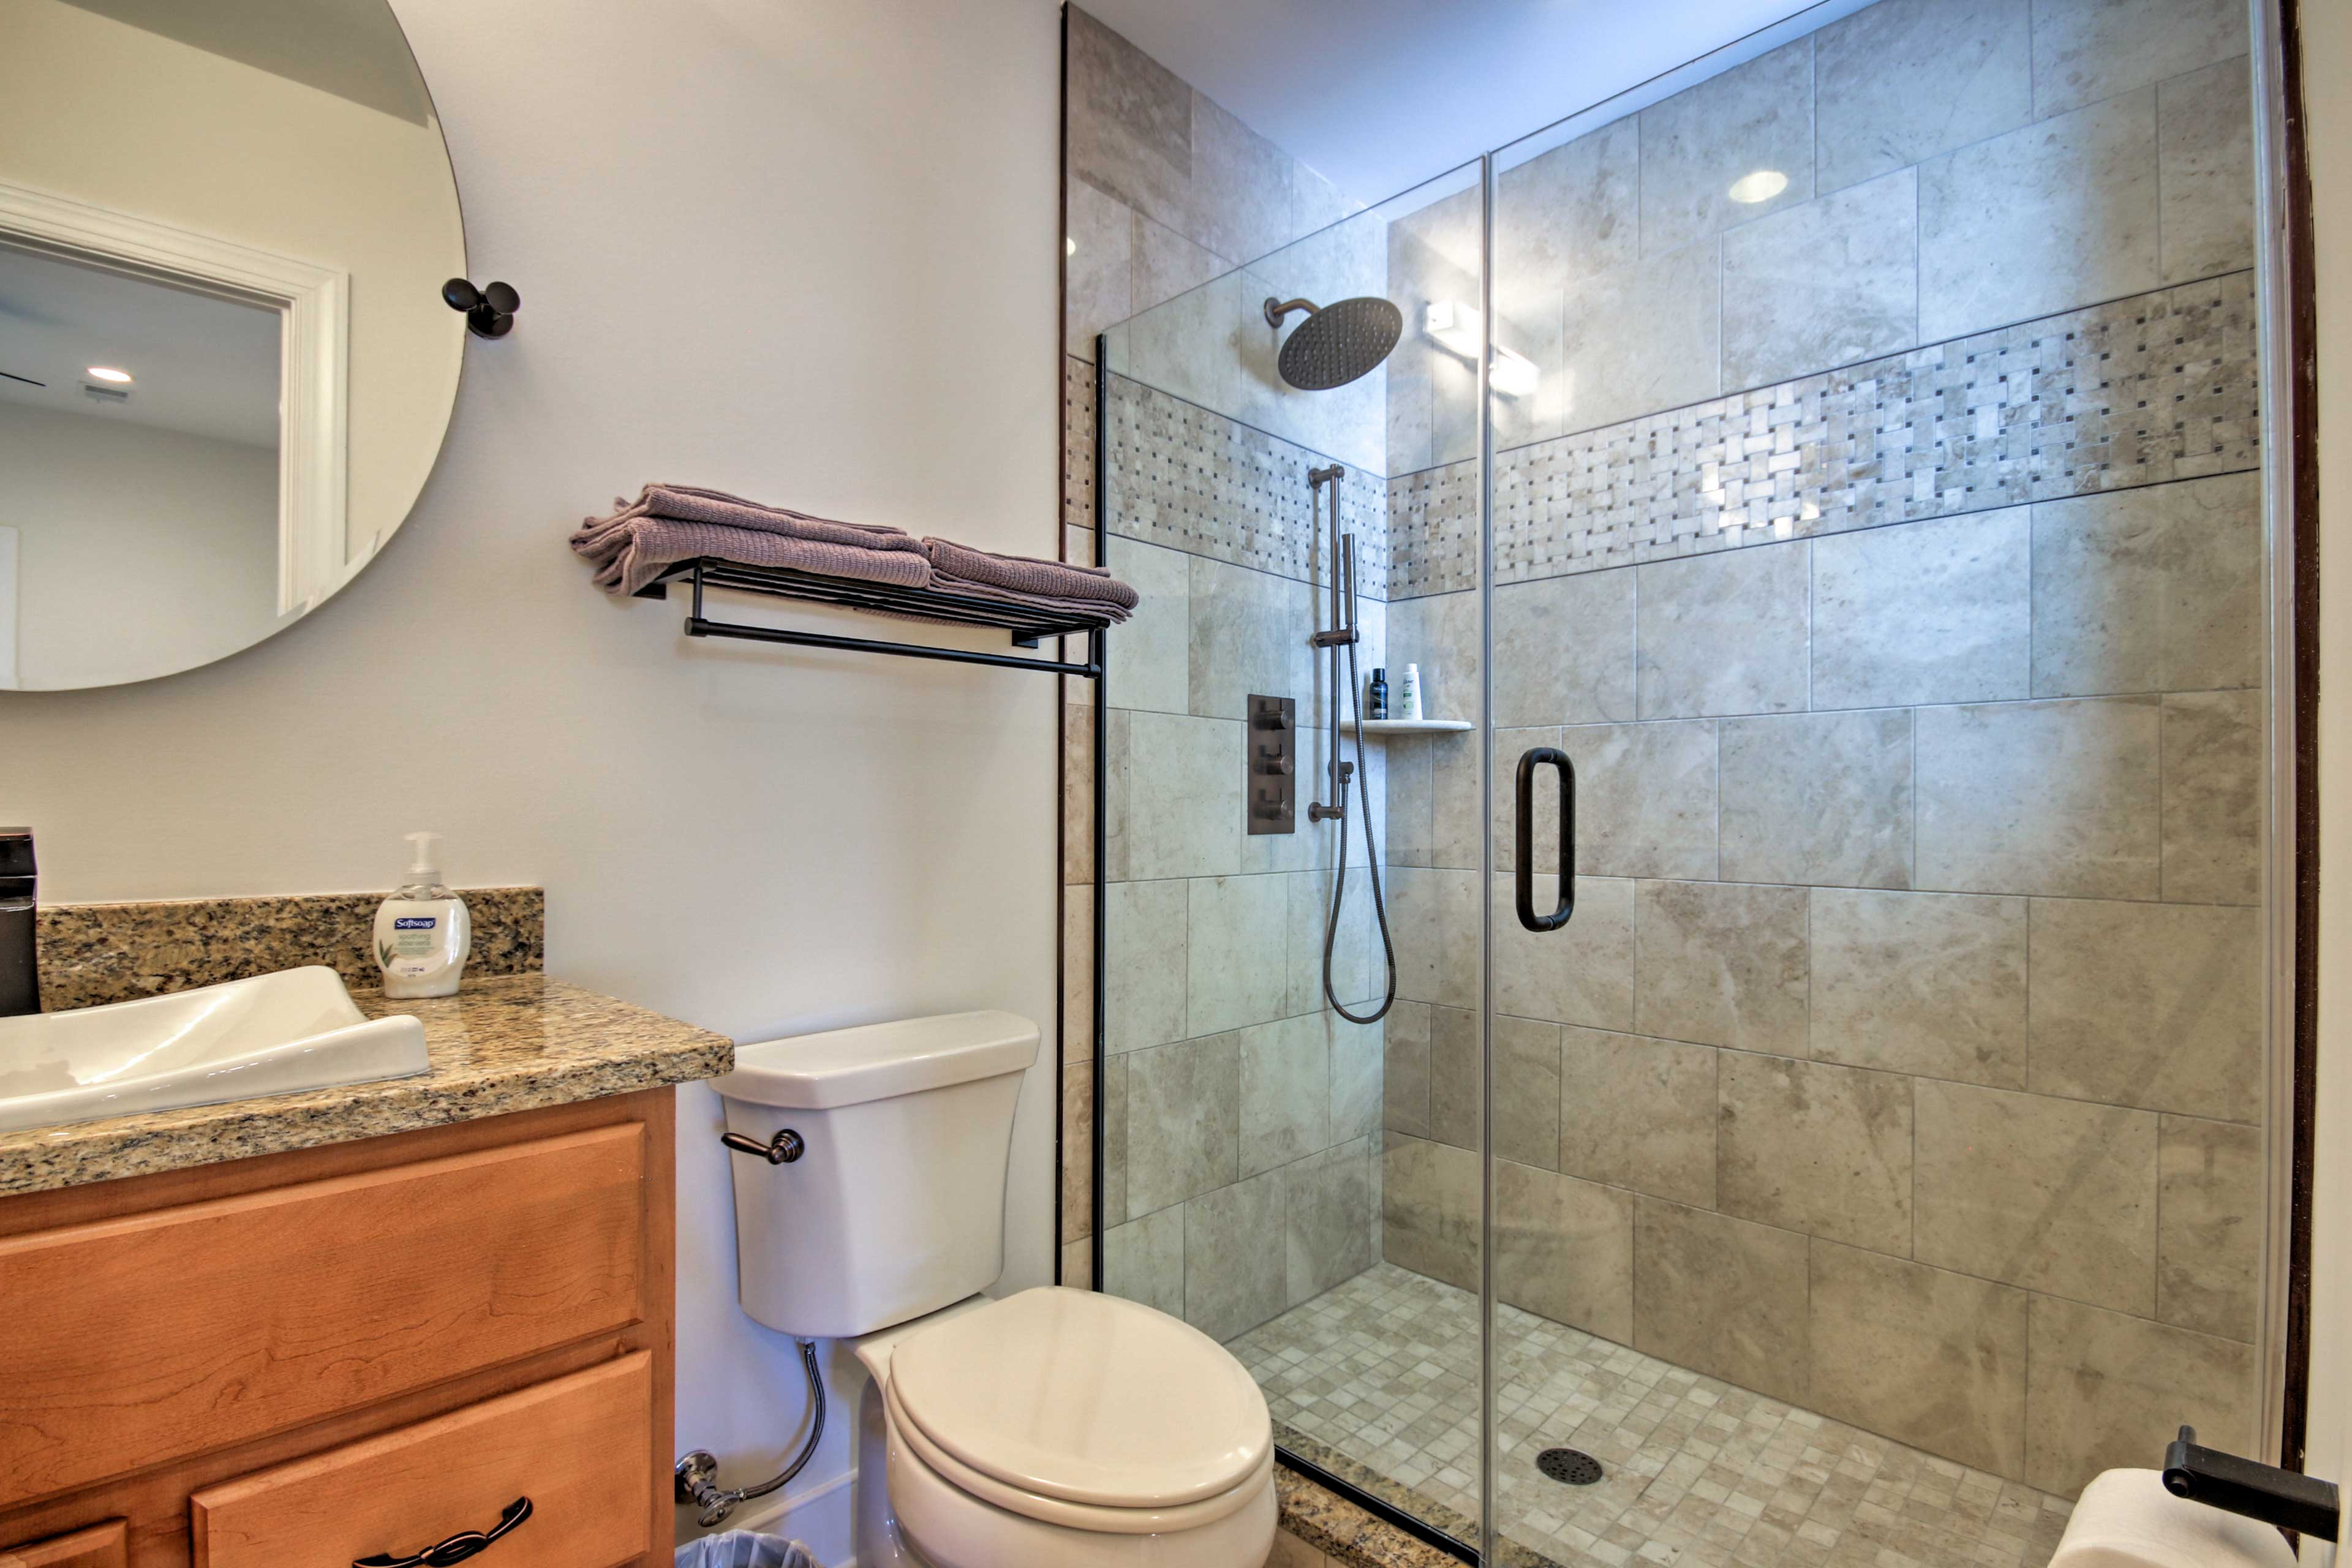 Rinse off the day in the beautiful tile-lined stand-up shower.